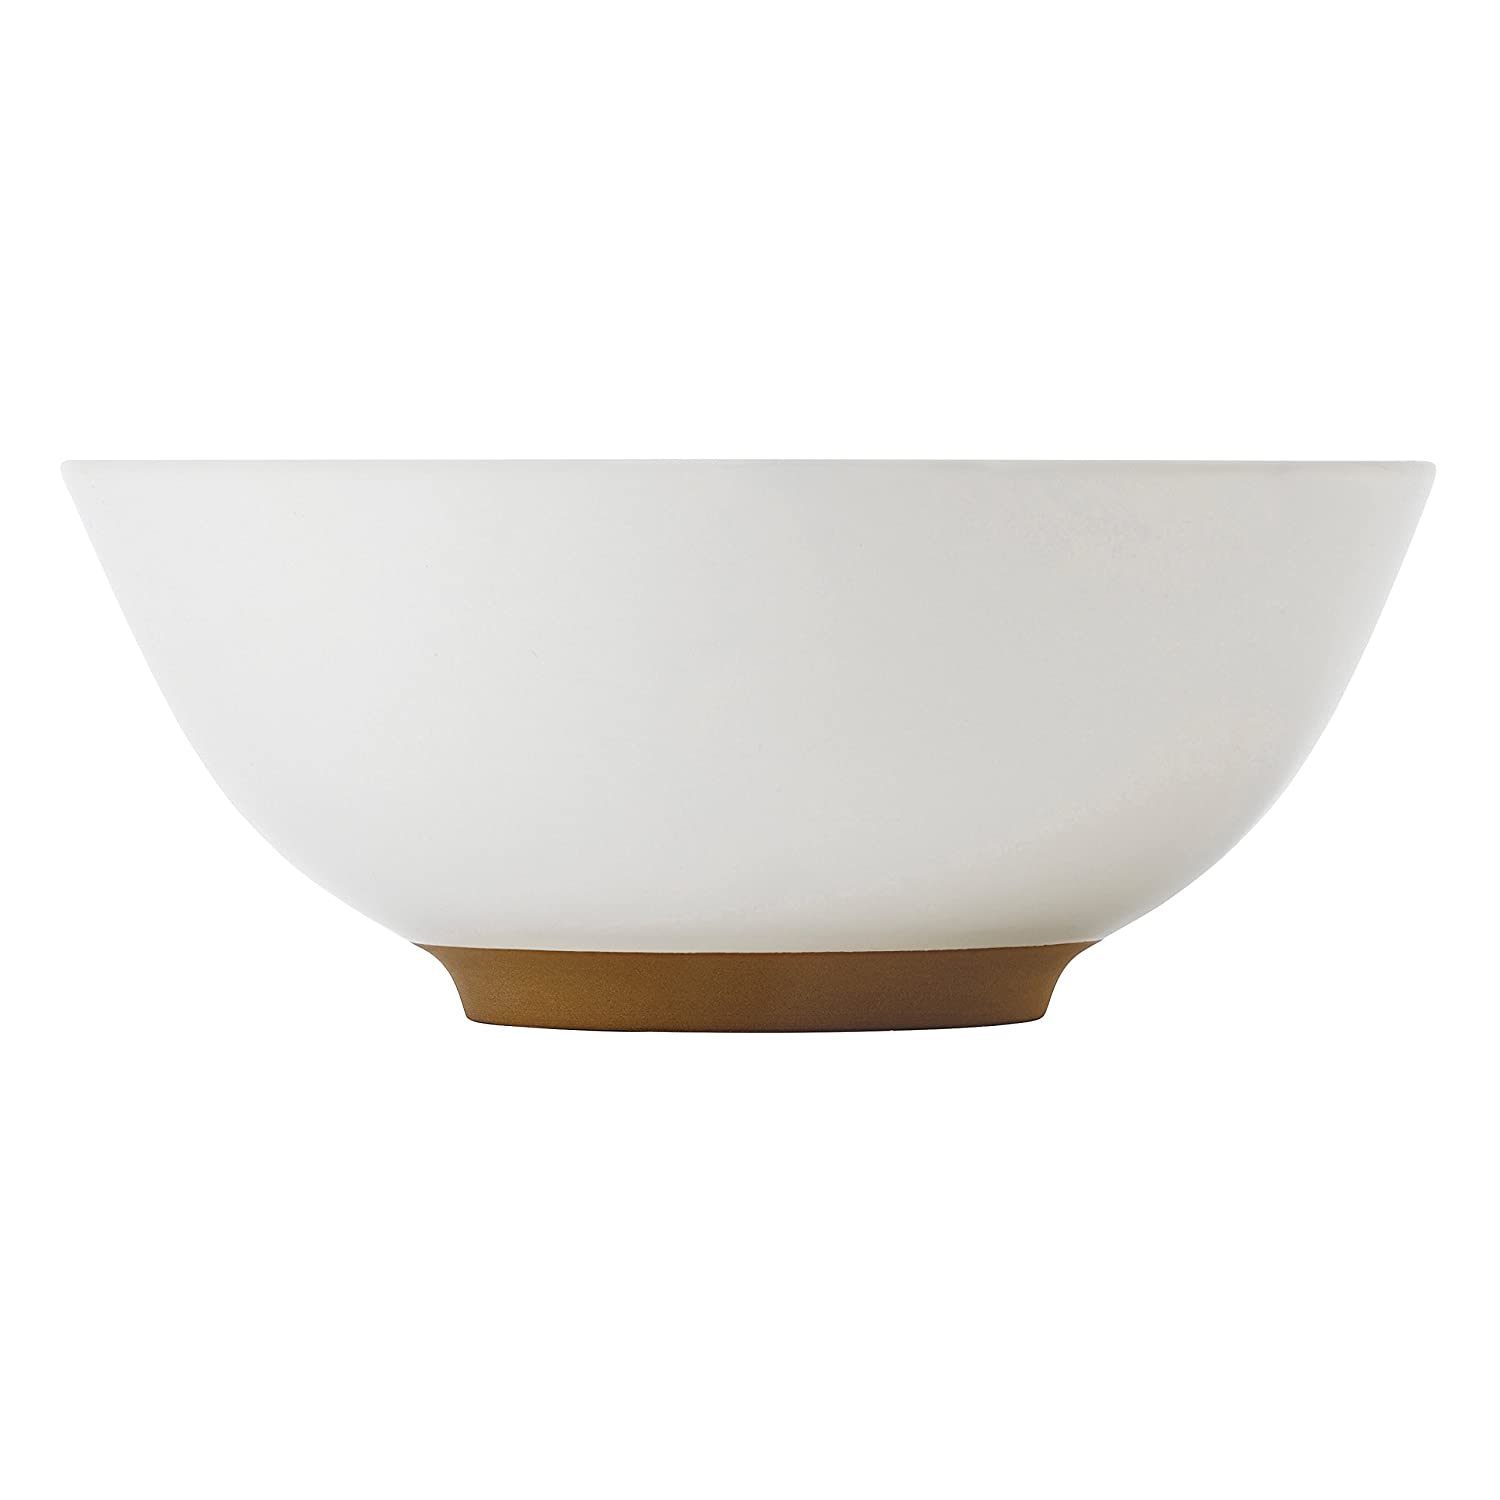 Royal Doulton Olio White Cereal Bowl, 6 6 40010216